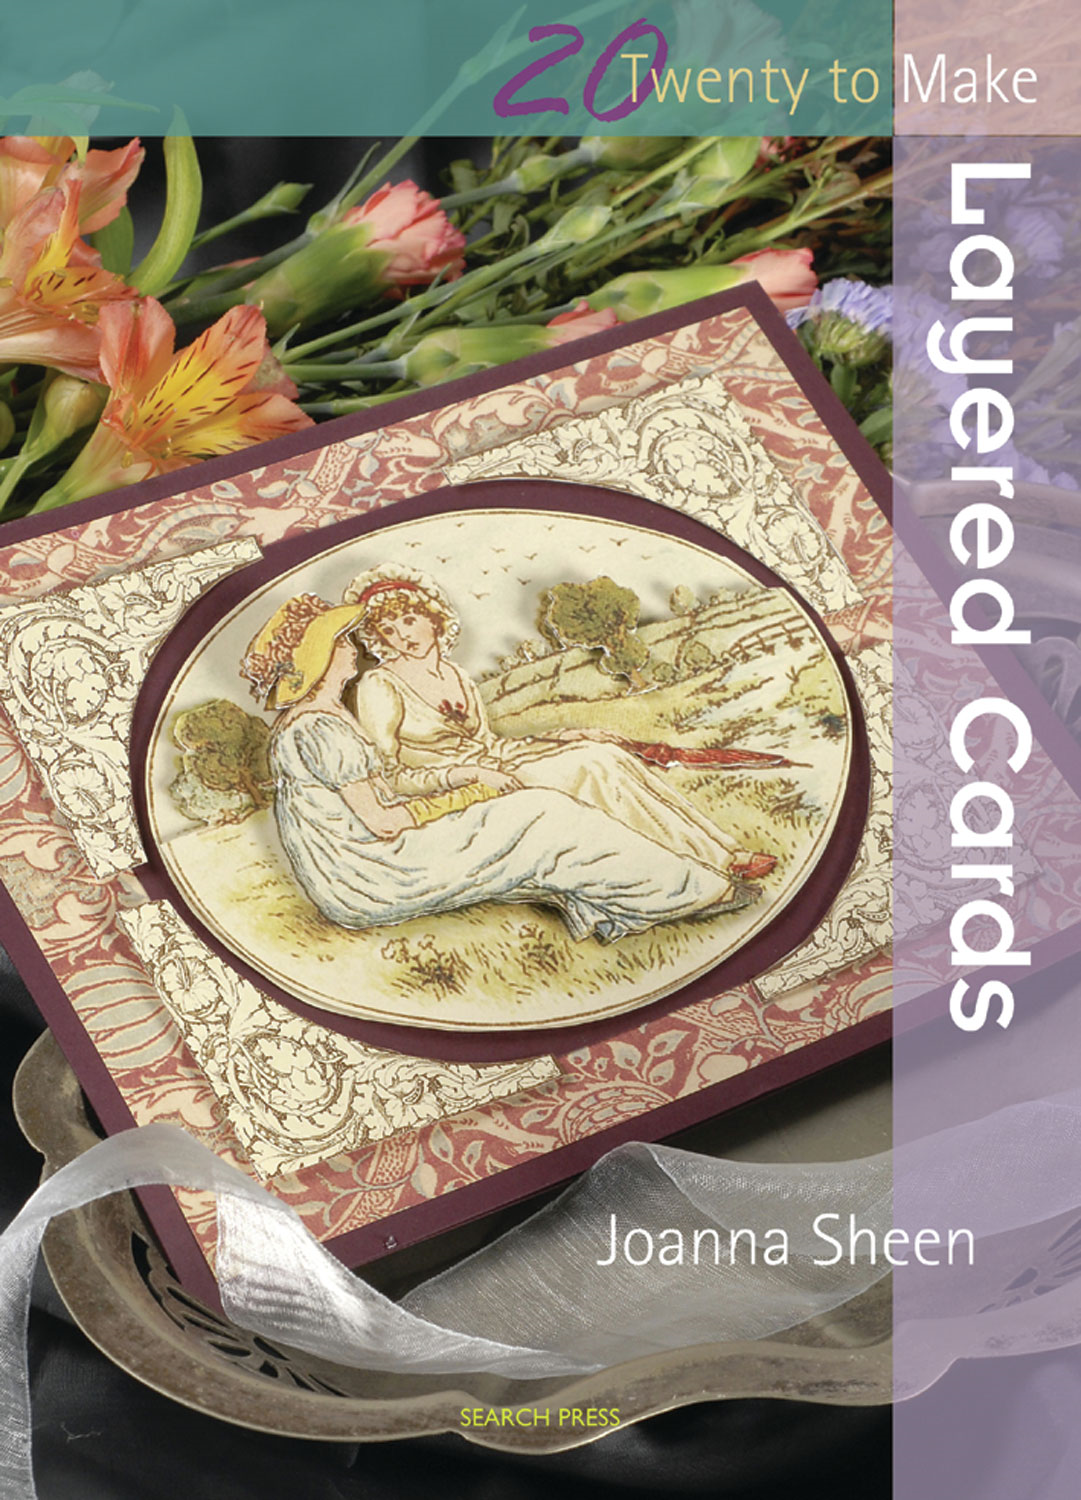 Layered Cards By: Joanna Sheen